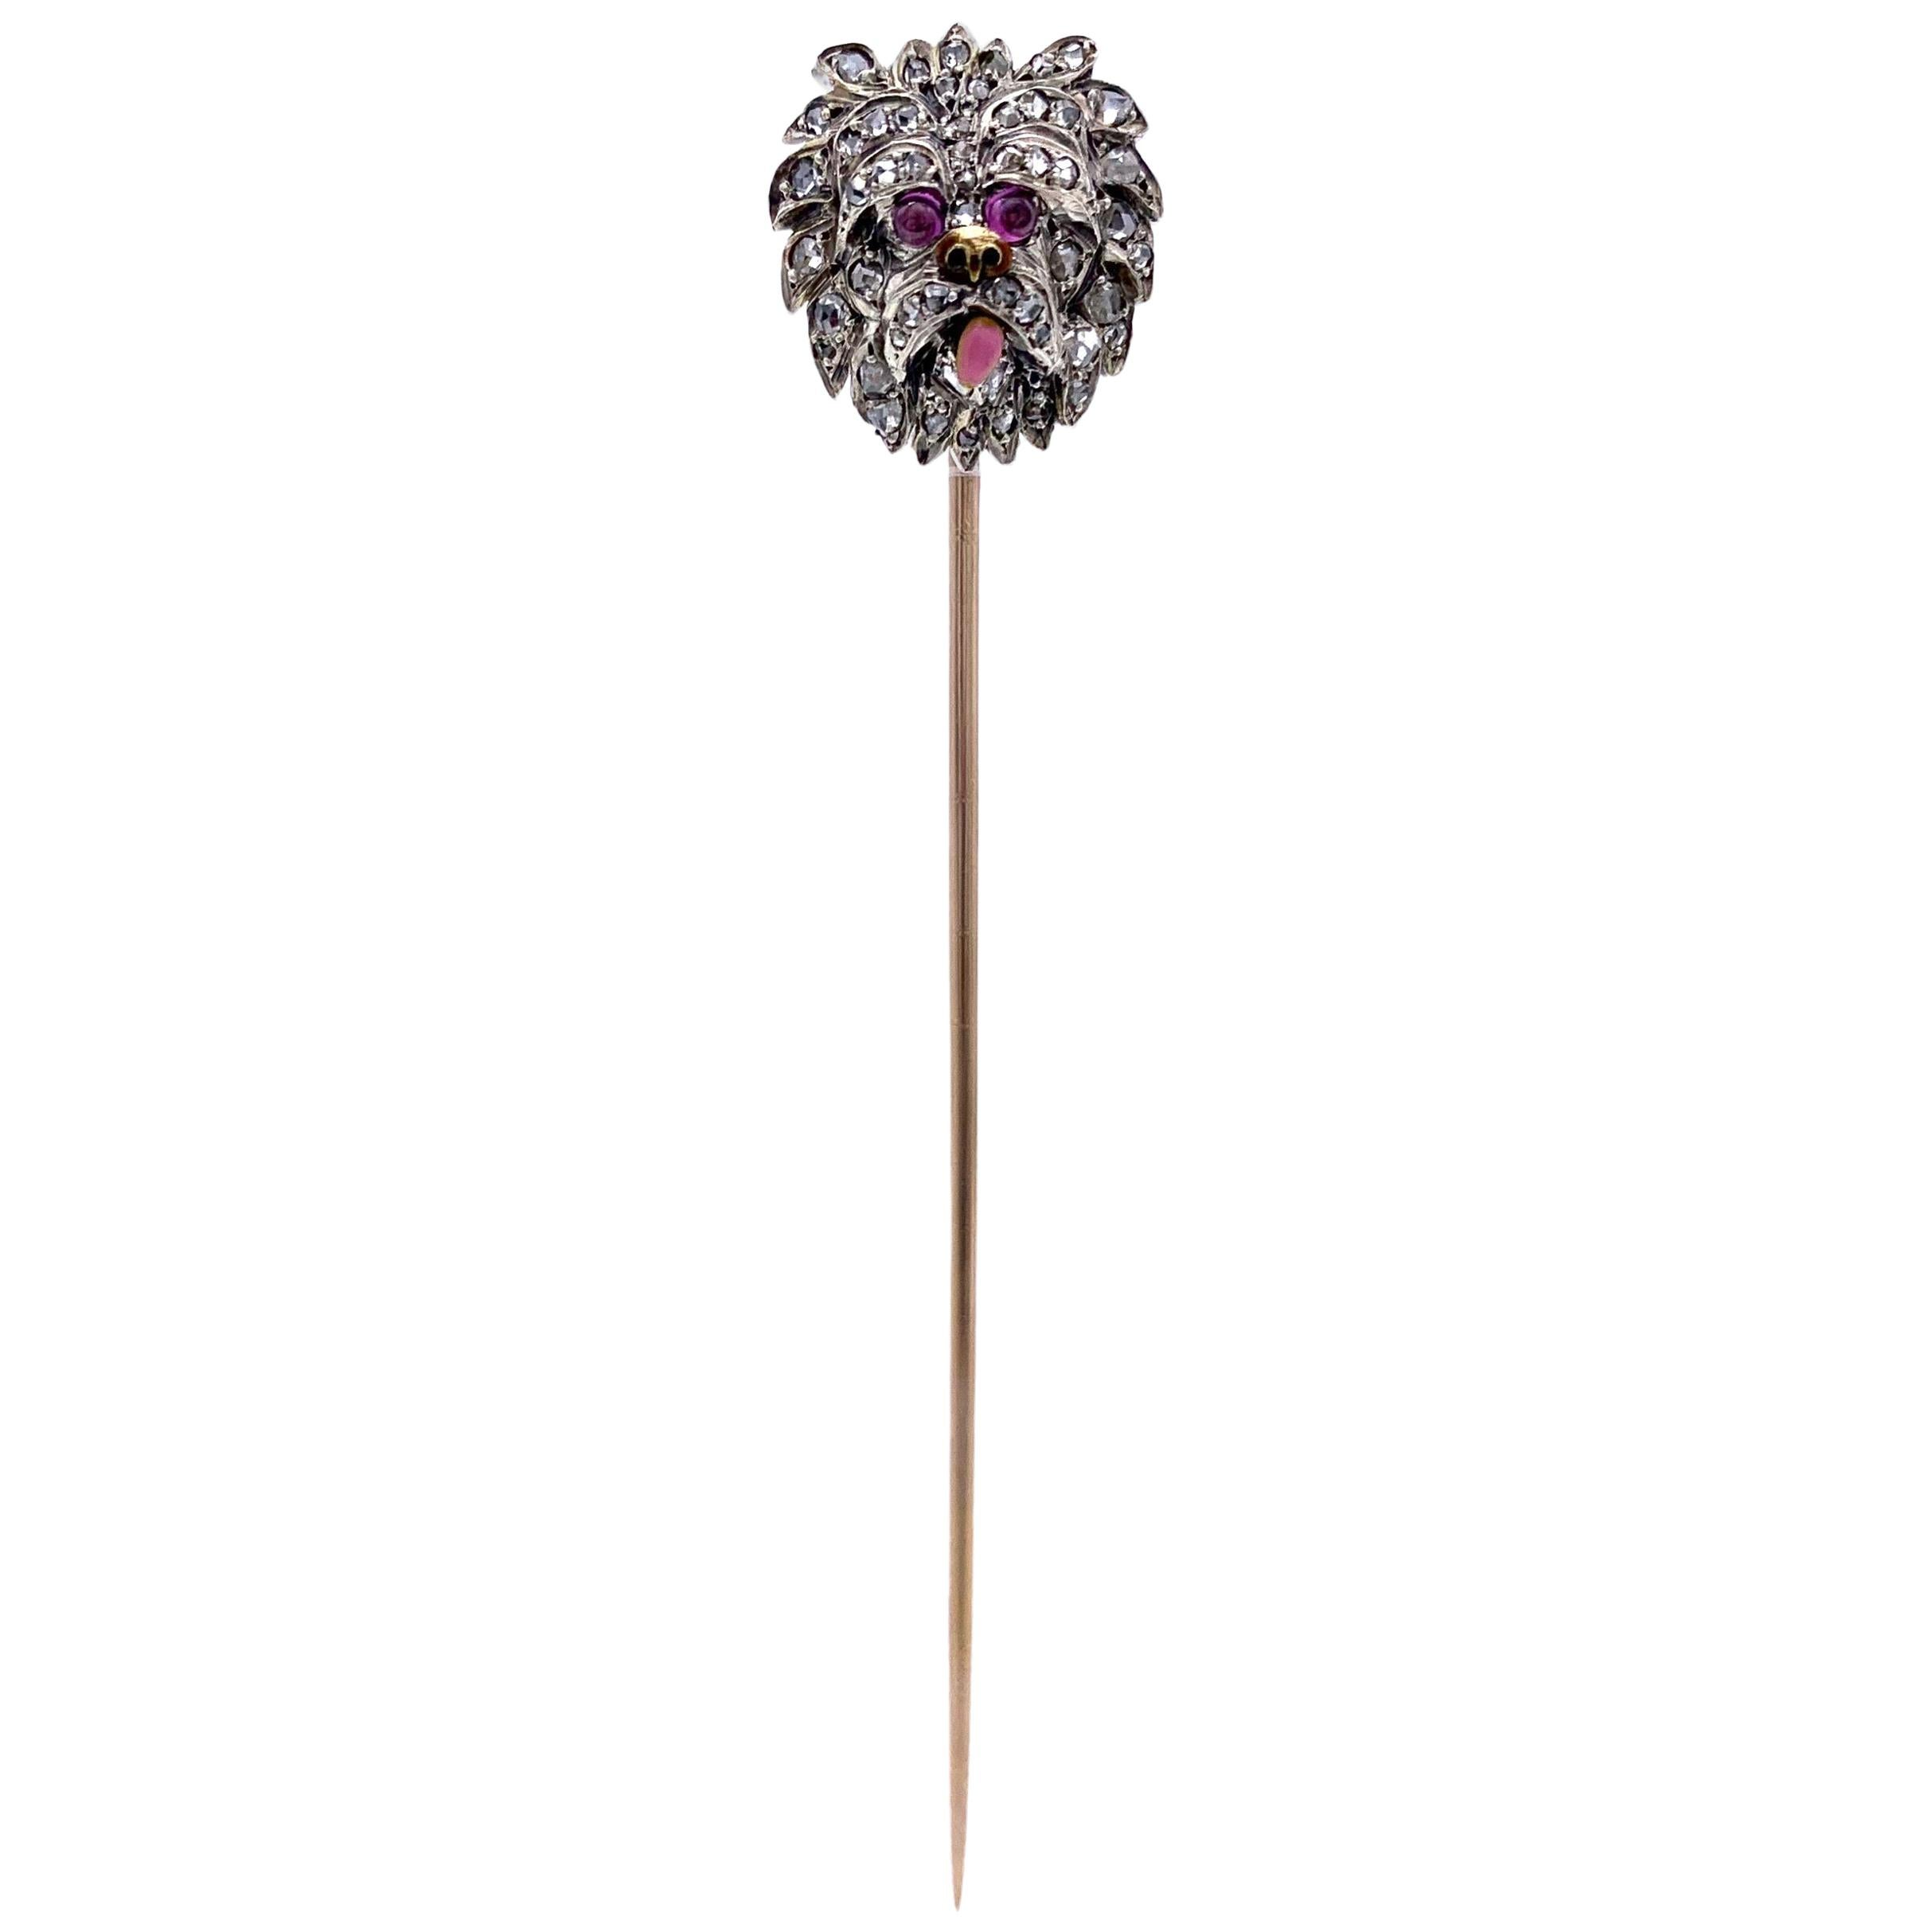 1890 Belle Èpoque Dog Yorckshire Terrier Stickpin 18 Kt Platinum Diamond Ruby